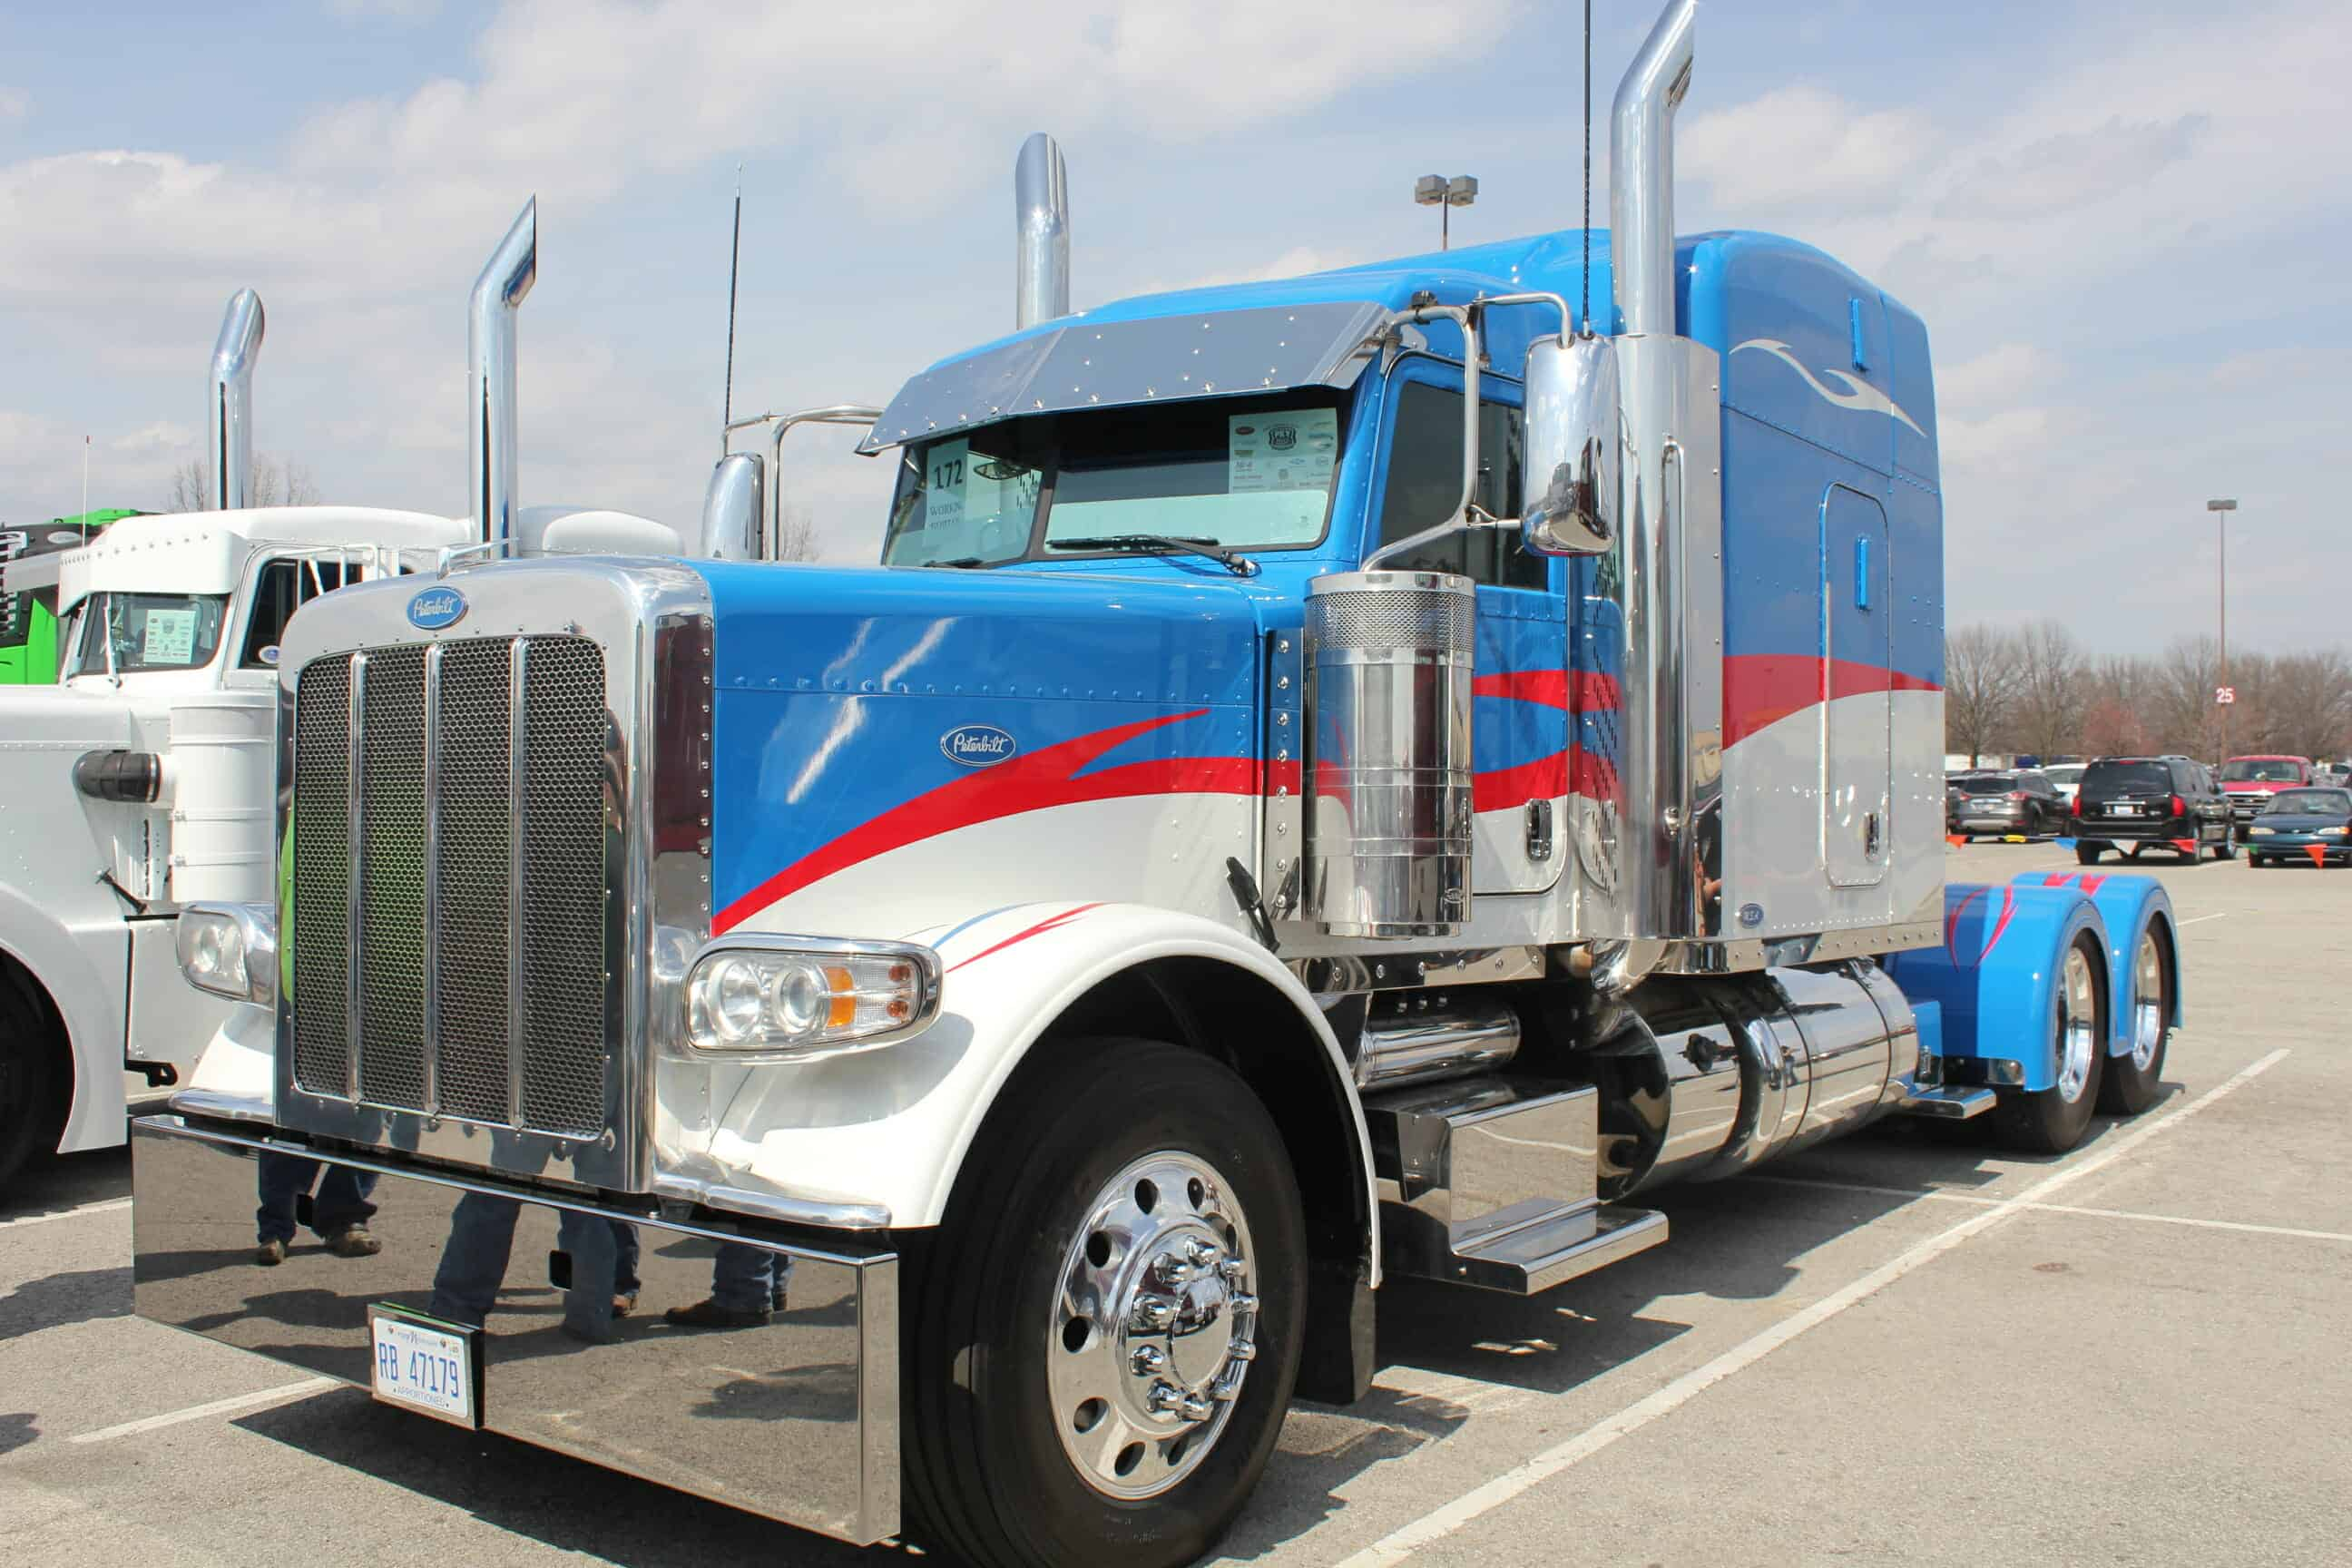 Big Rig Show Trucks: Top Custom Semi Rigs